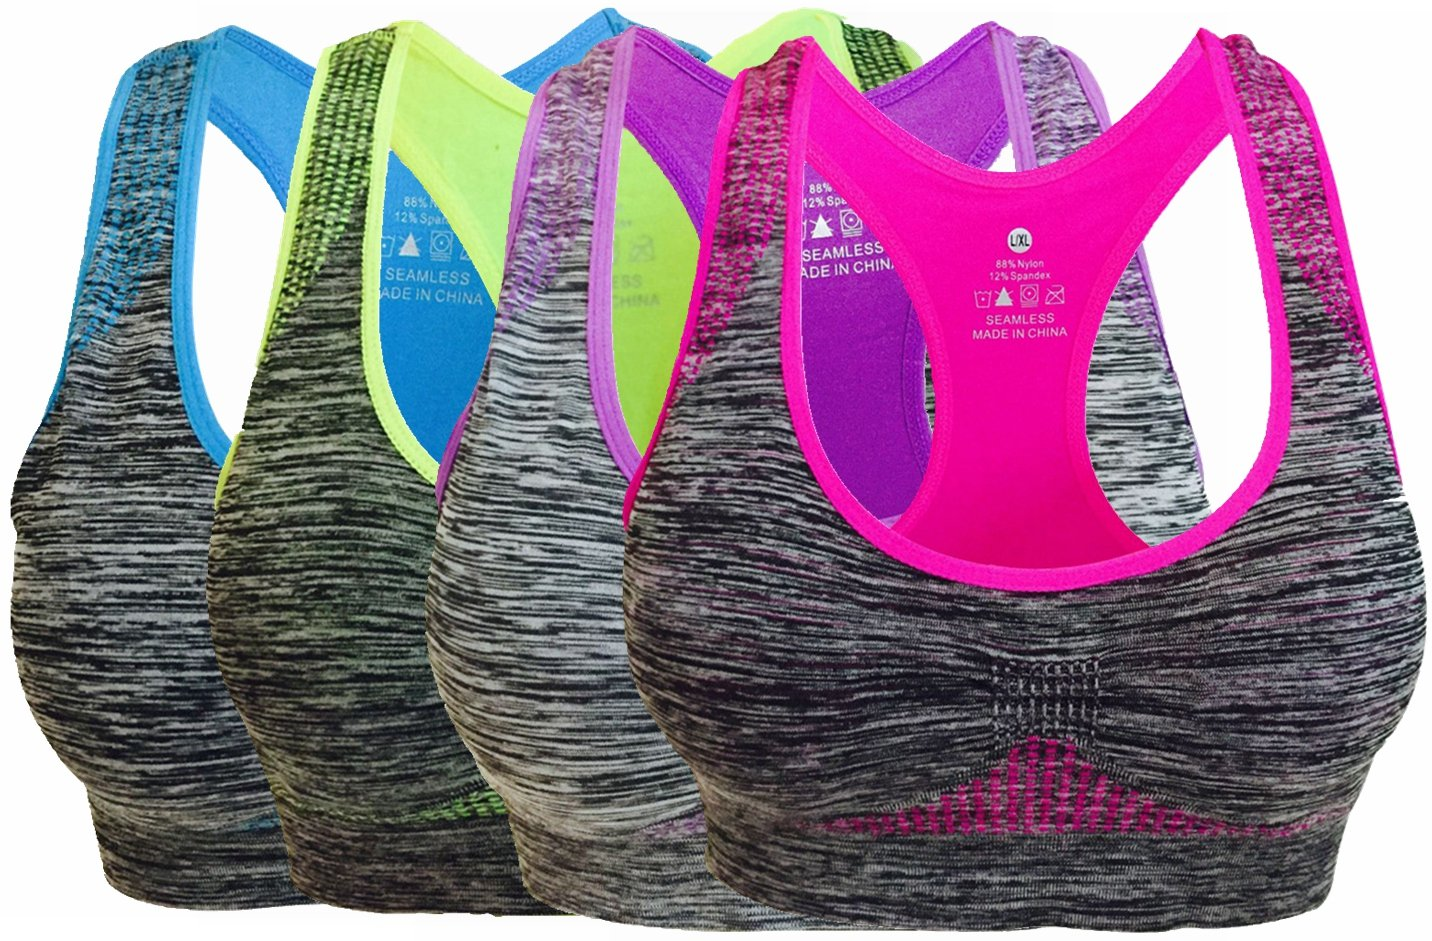 Women's Seamless Sports Bra High Impact Pocket Yoga Bras L 4 Pack